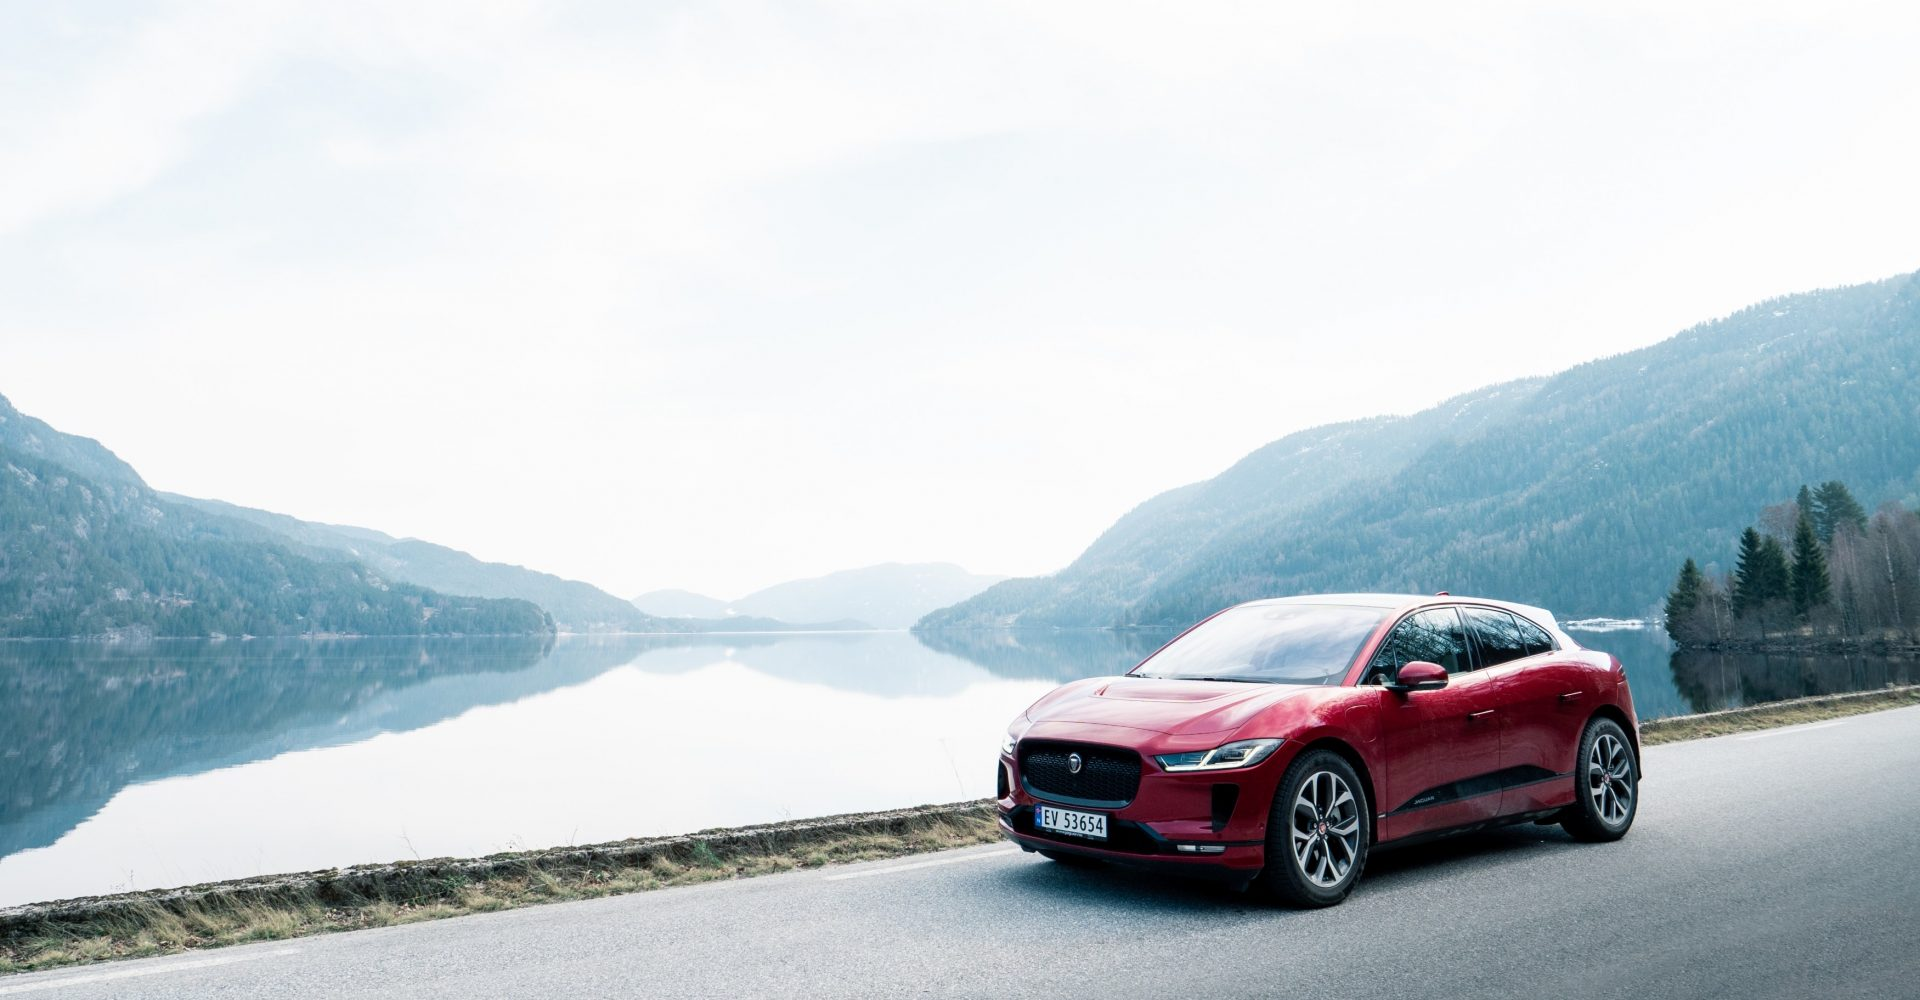 Jaguar joins wireless electric vehicle charging project in Norway